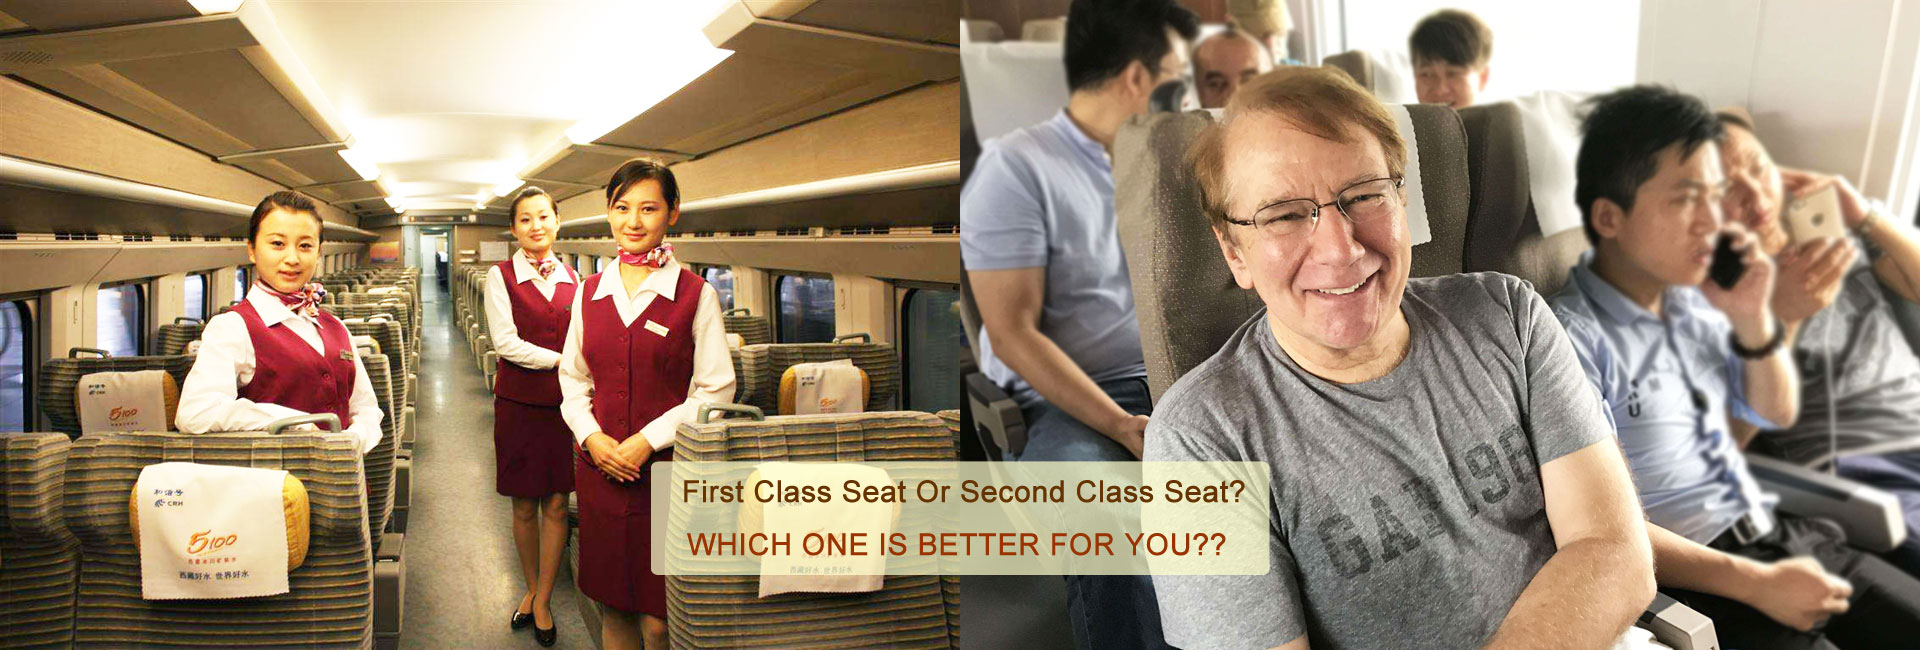 Difference between First Class and Economy Seats